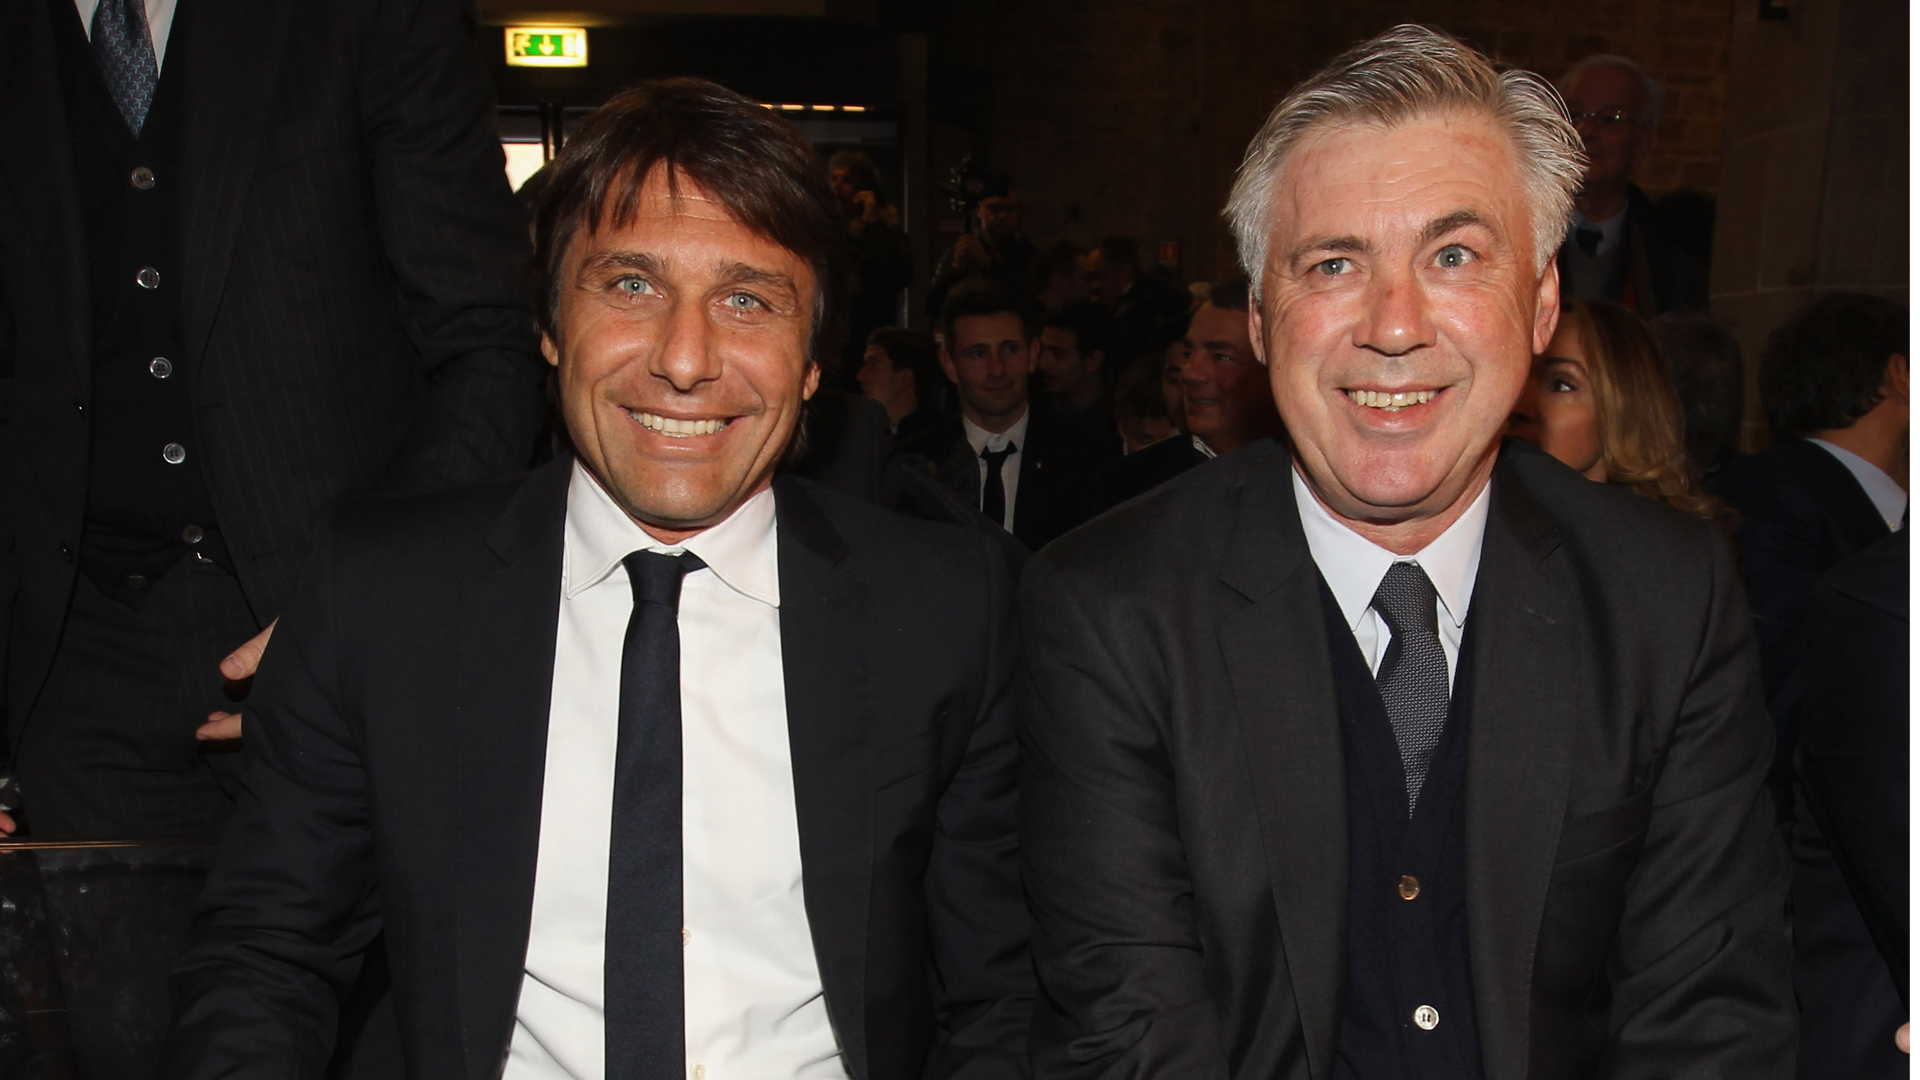 Carlo Ancelotti and Antonio Conte